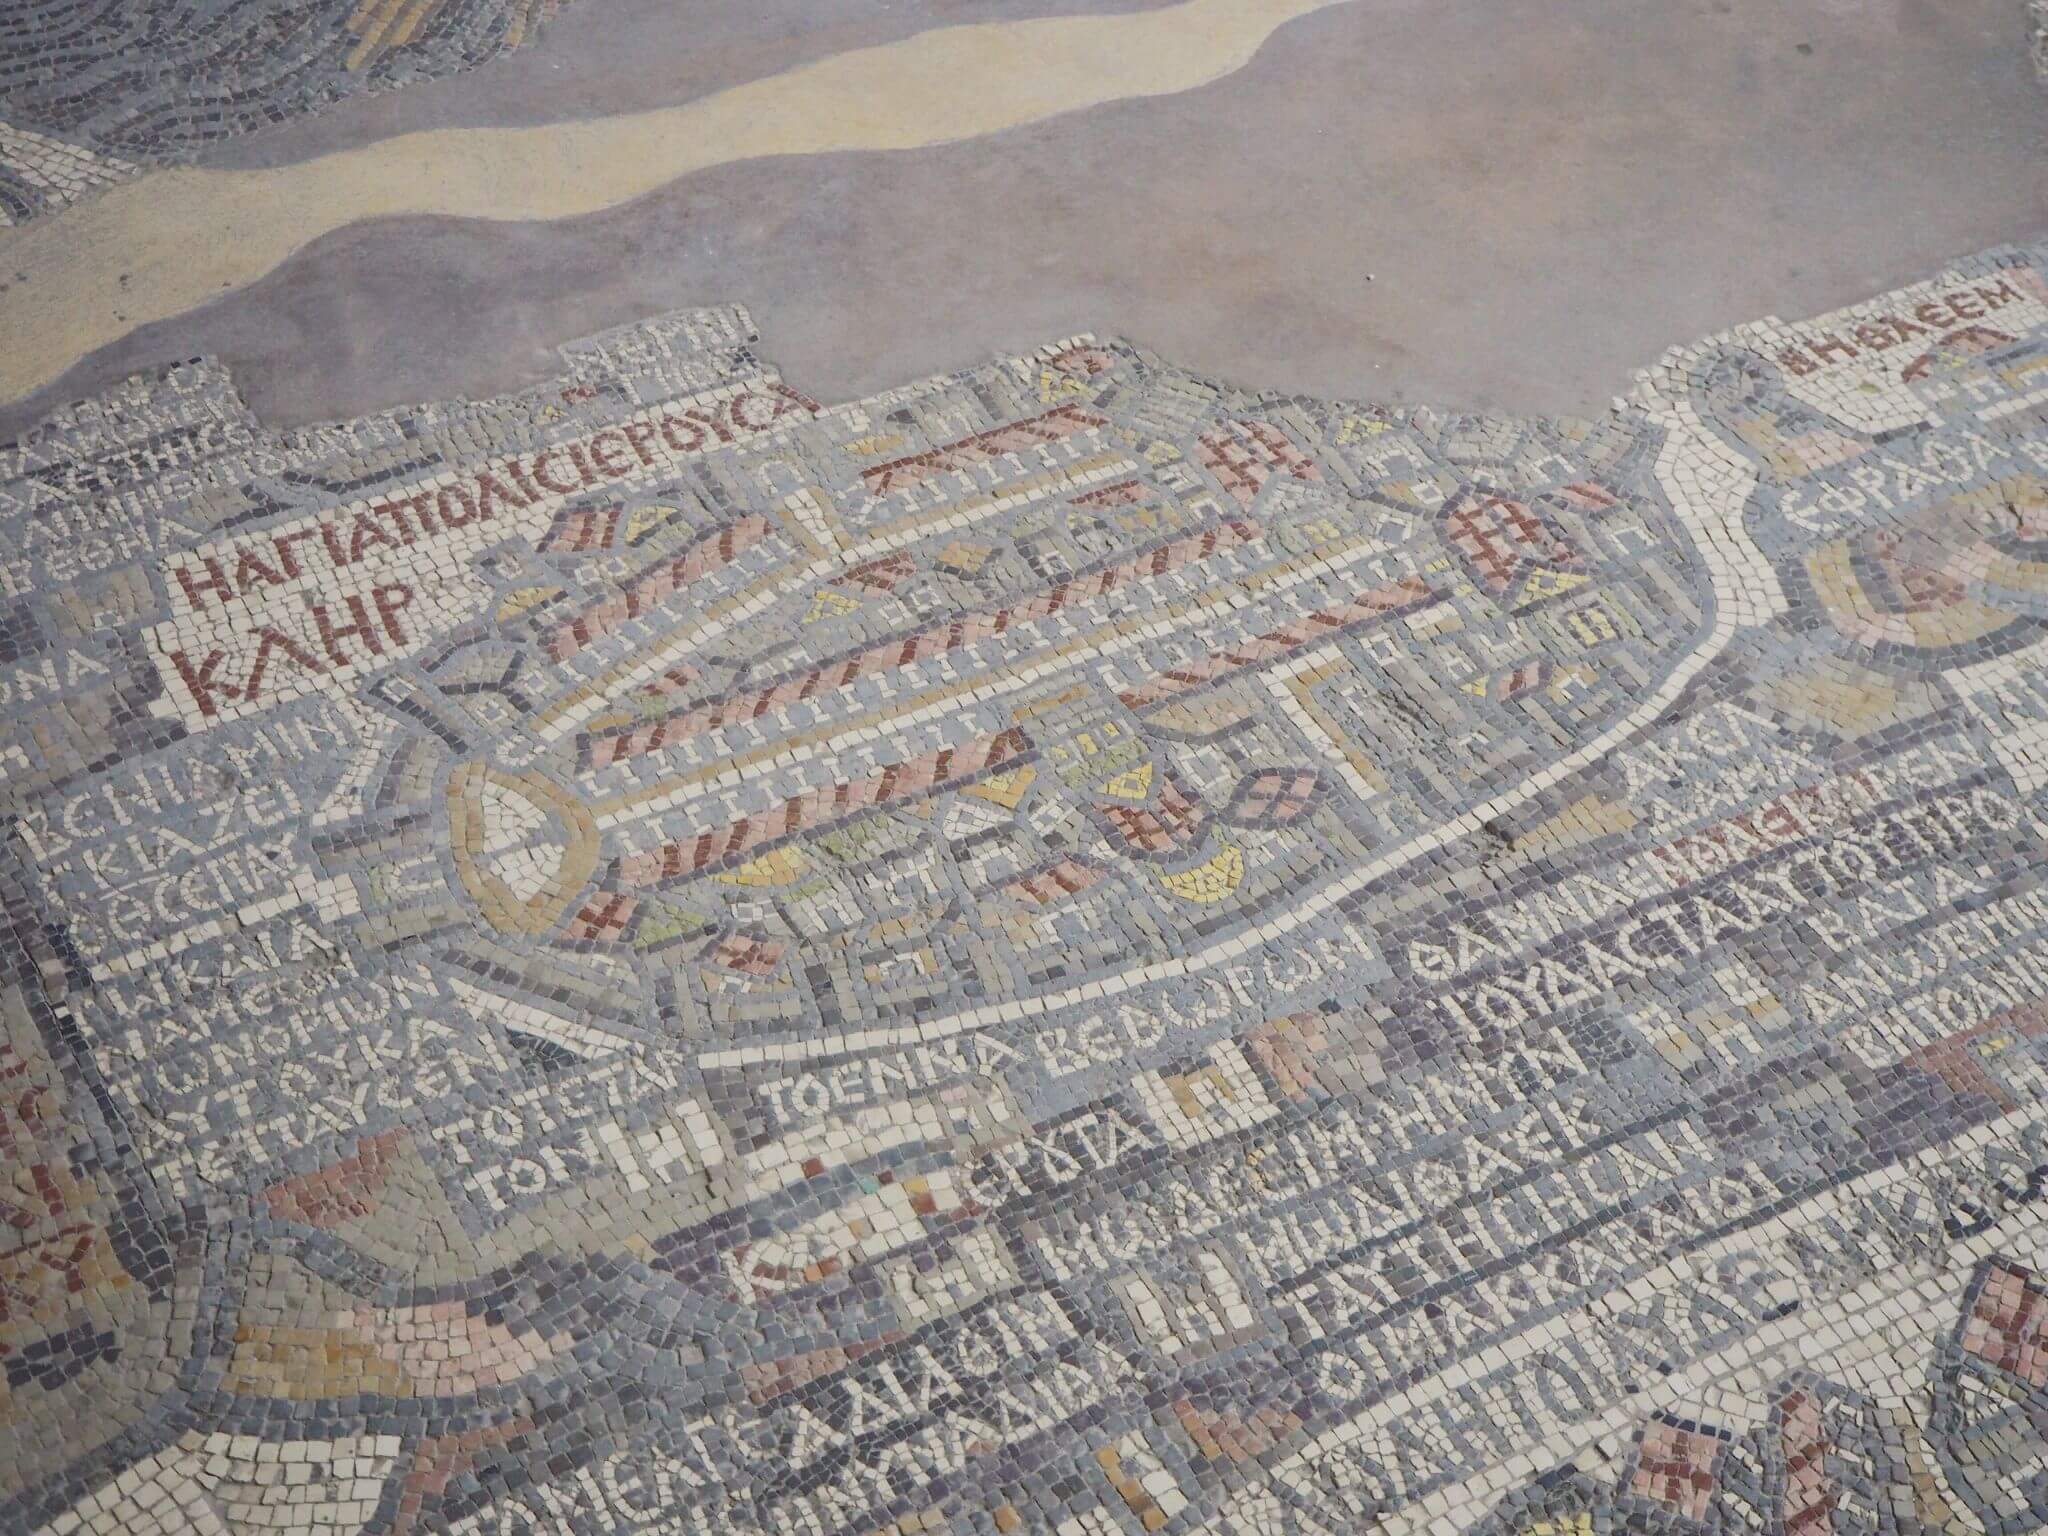 the mosaic map of the Middle East on the floor of the church in Madaba